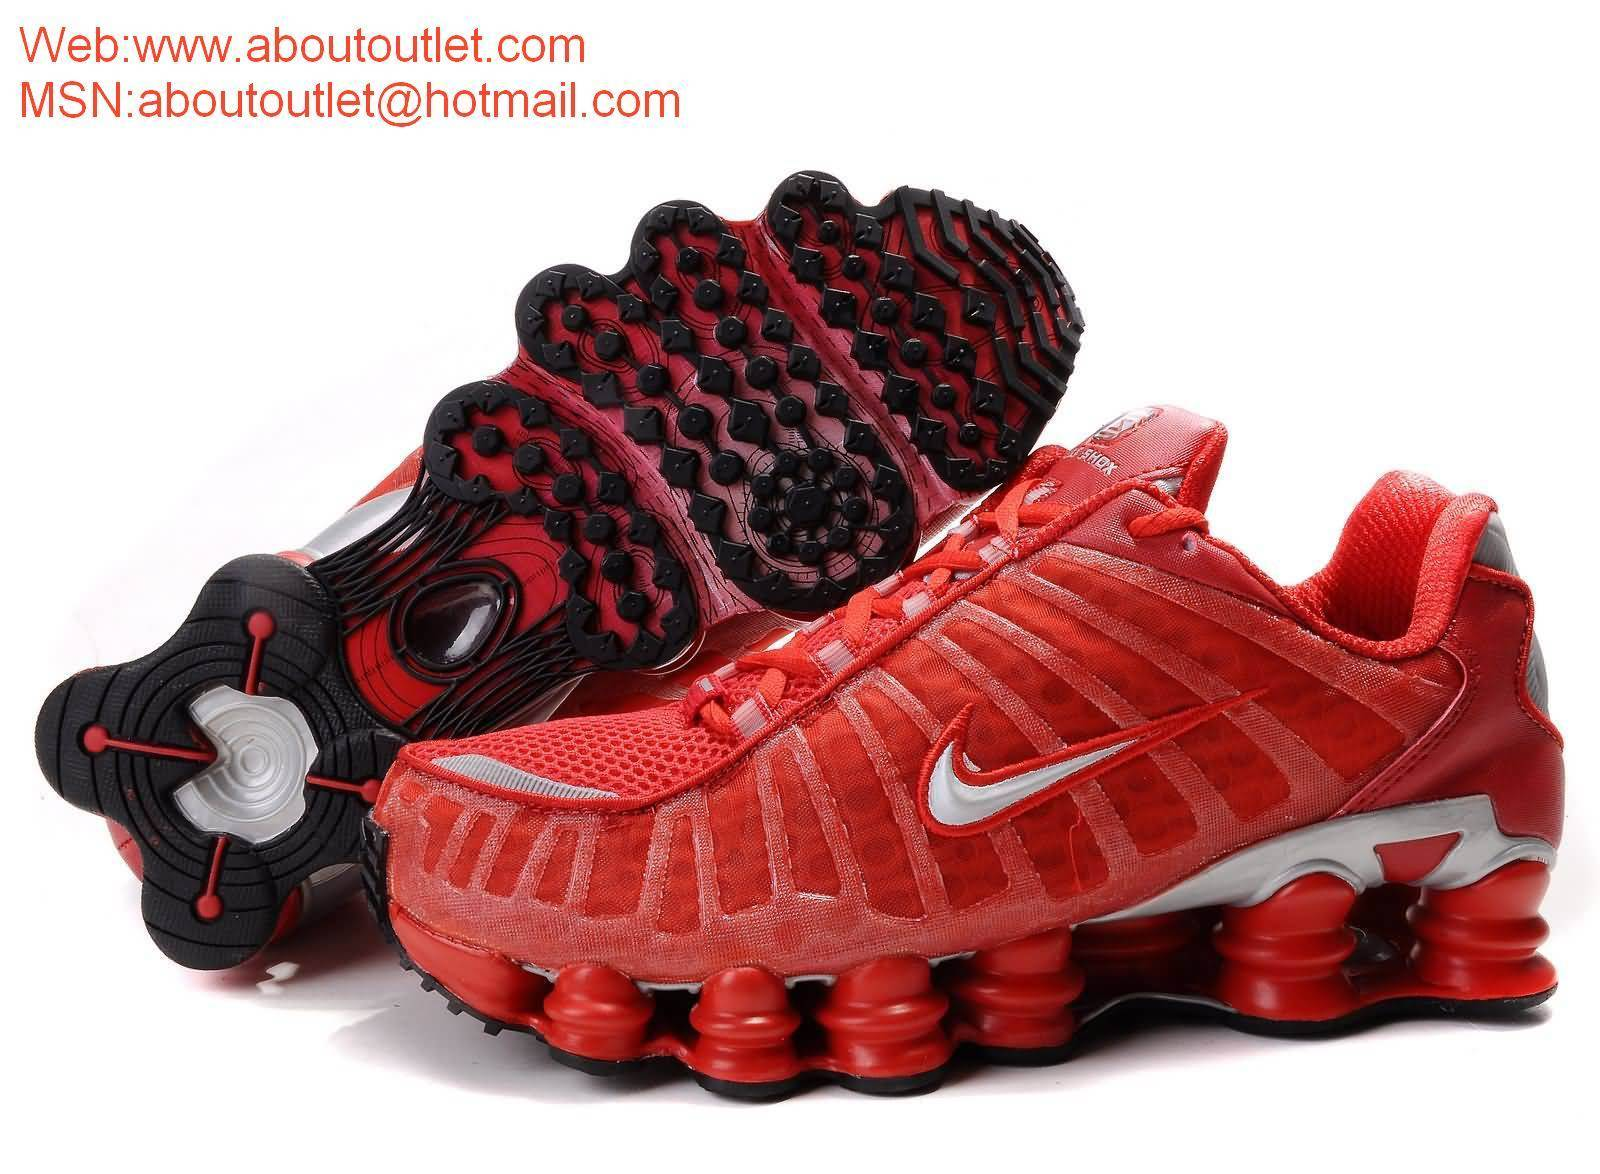 www.aboutoutlet.com, Discount Nike shox shoes